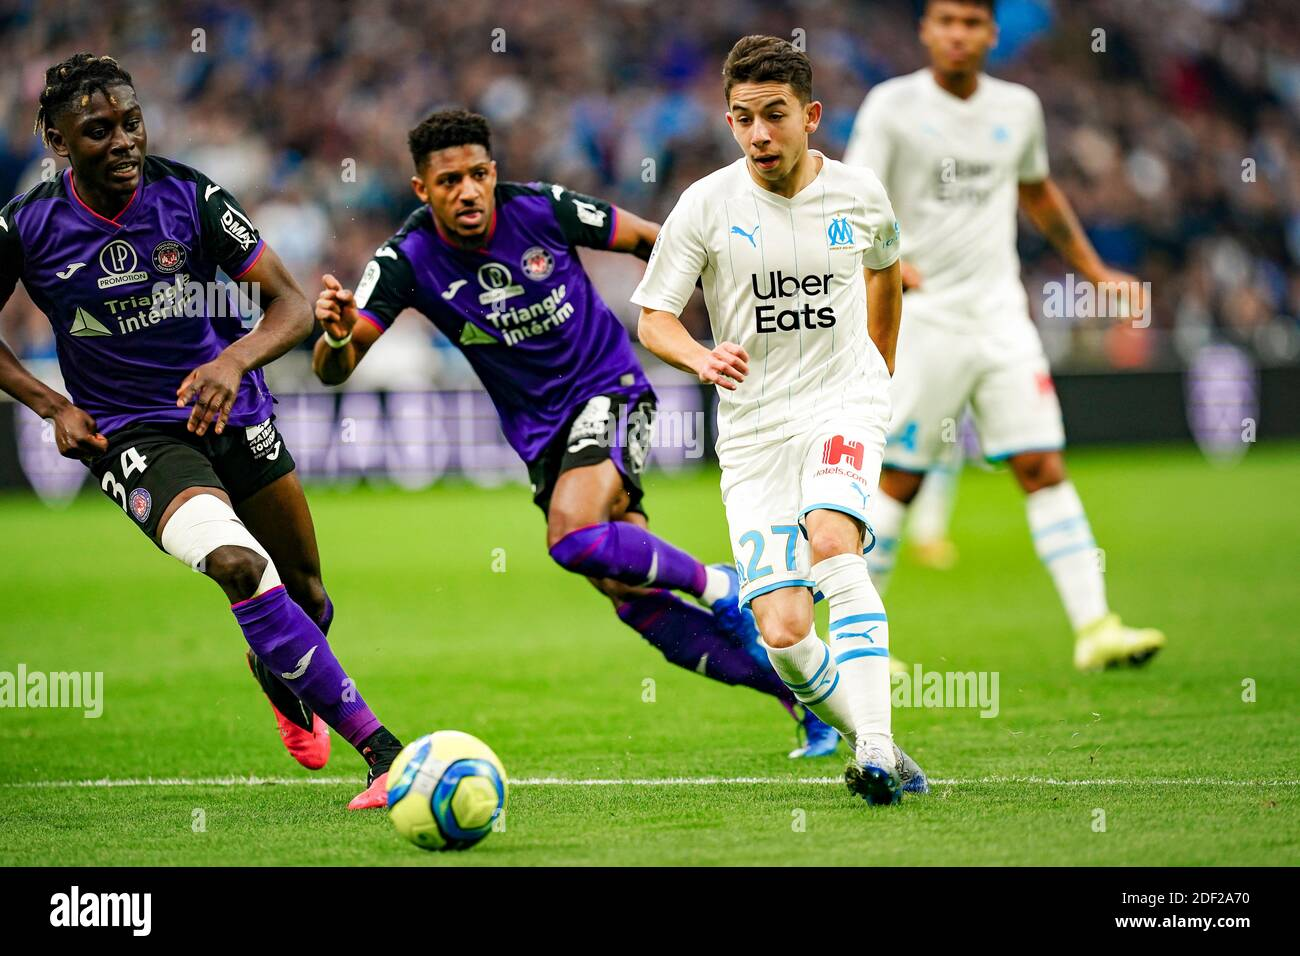 Maxime López High Resolution Stock Photography and Images - Alamy